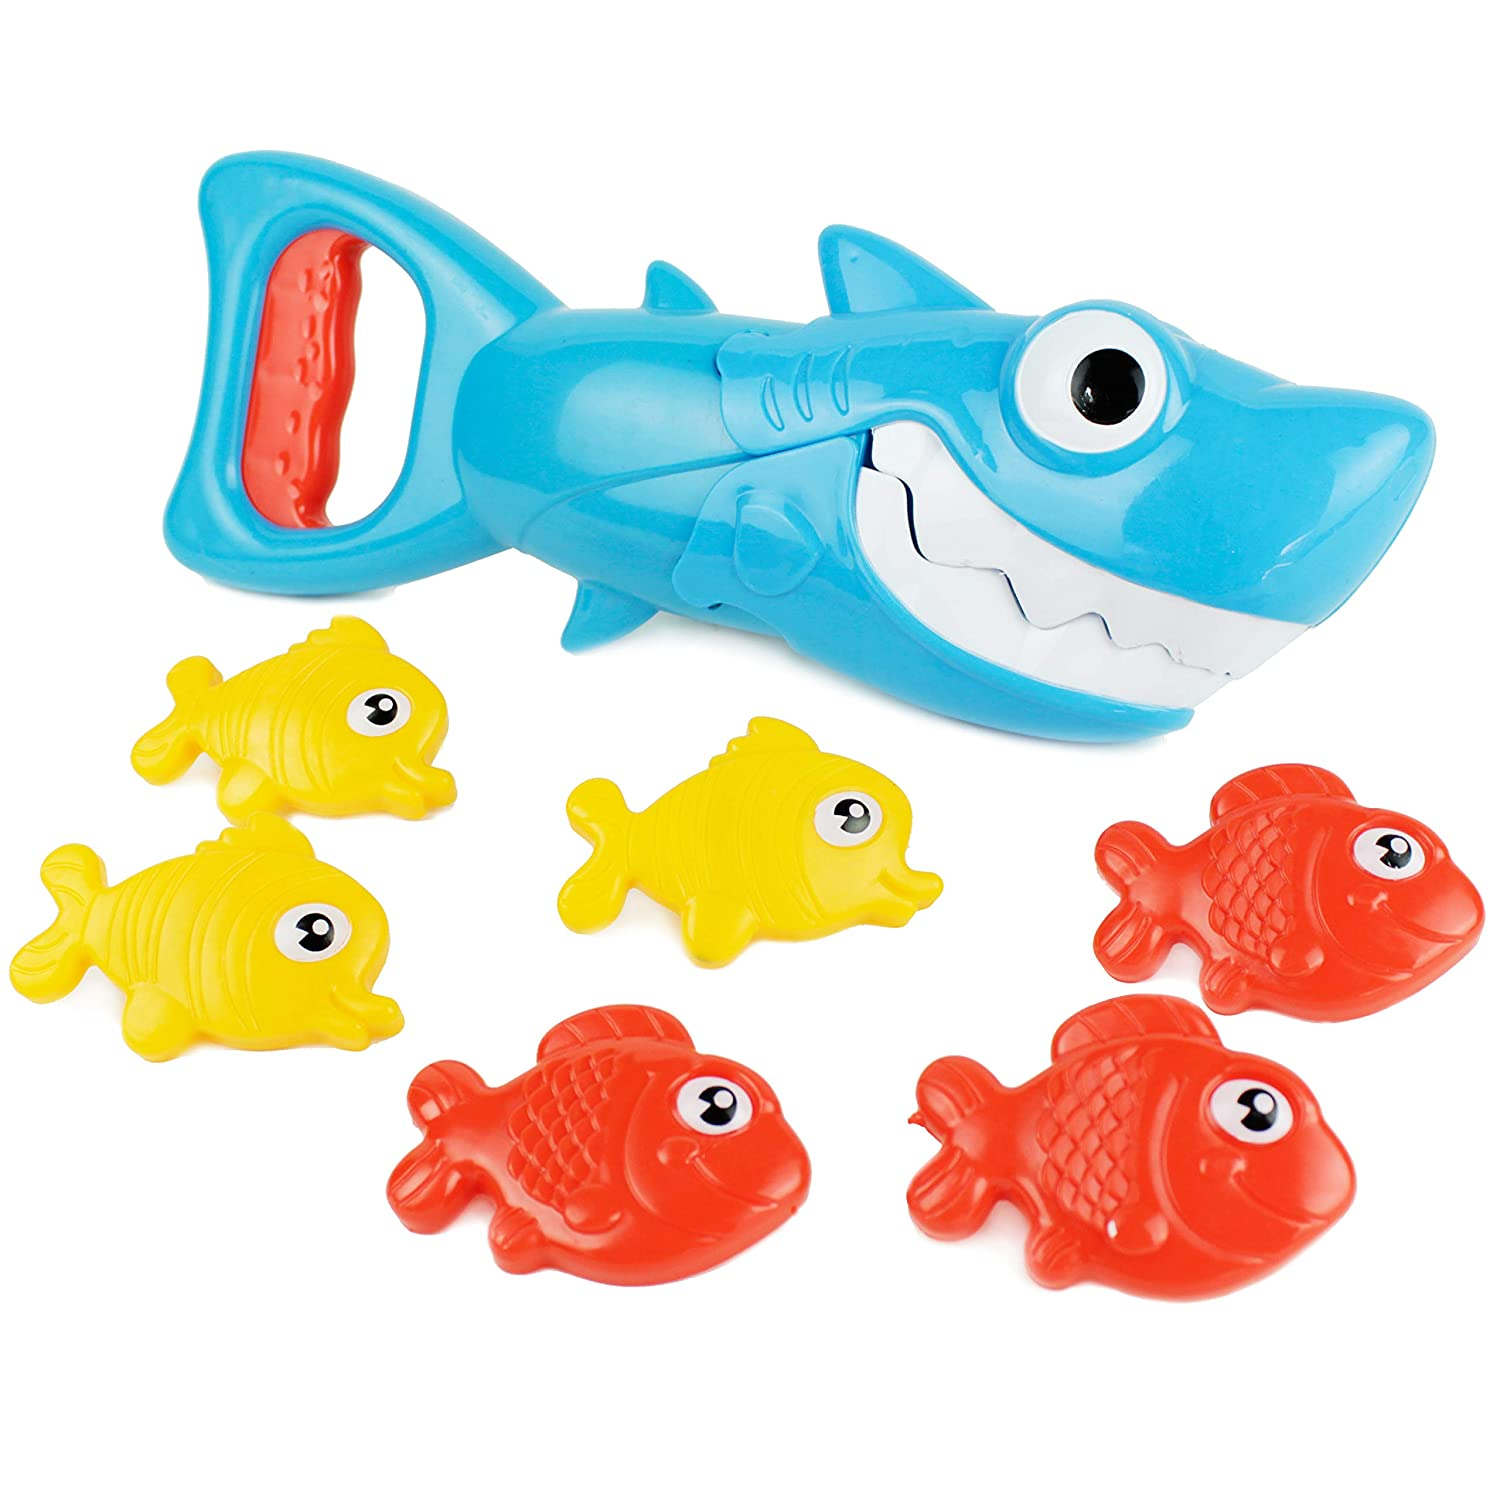 Boley Shark Grabber Bath Toy Game for Kids - Great White Shark with Teeth Biting Action - Includes 6 Sinking Fish